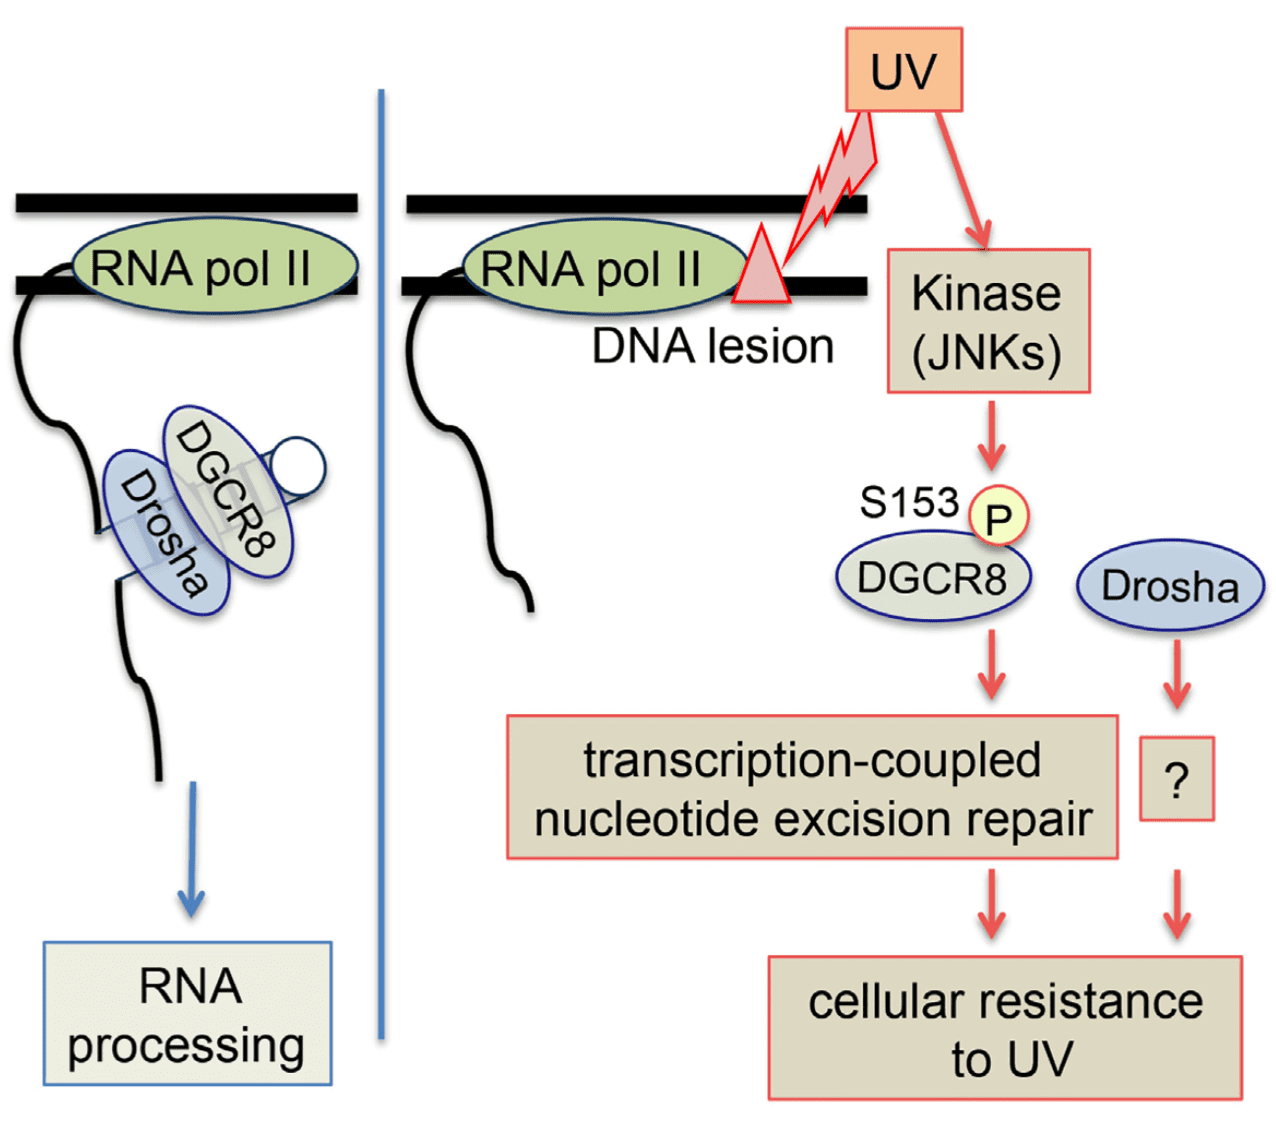 DGCR8 Mediates Repair Of UV-induced DNA Damage Independently Of RNA Processing